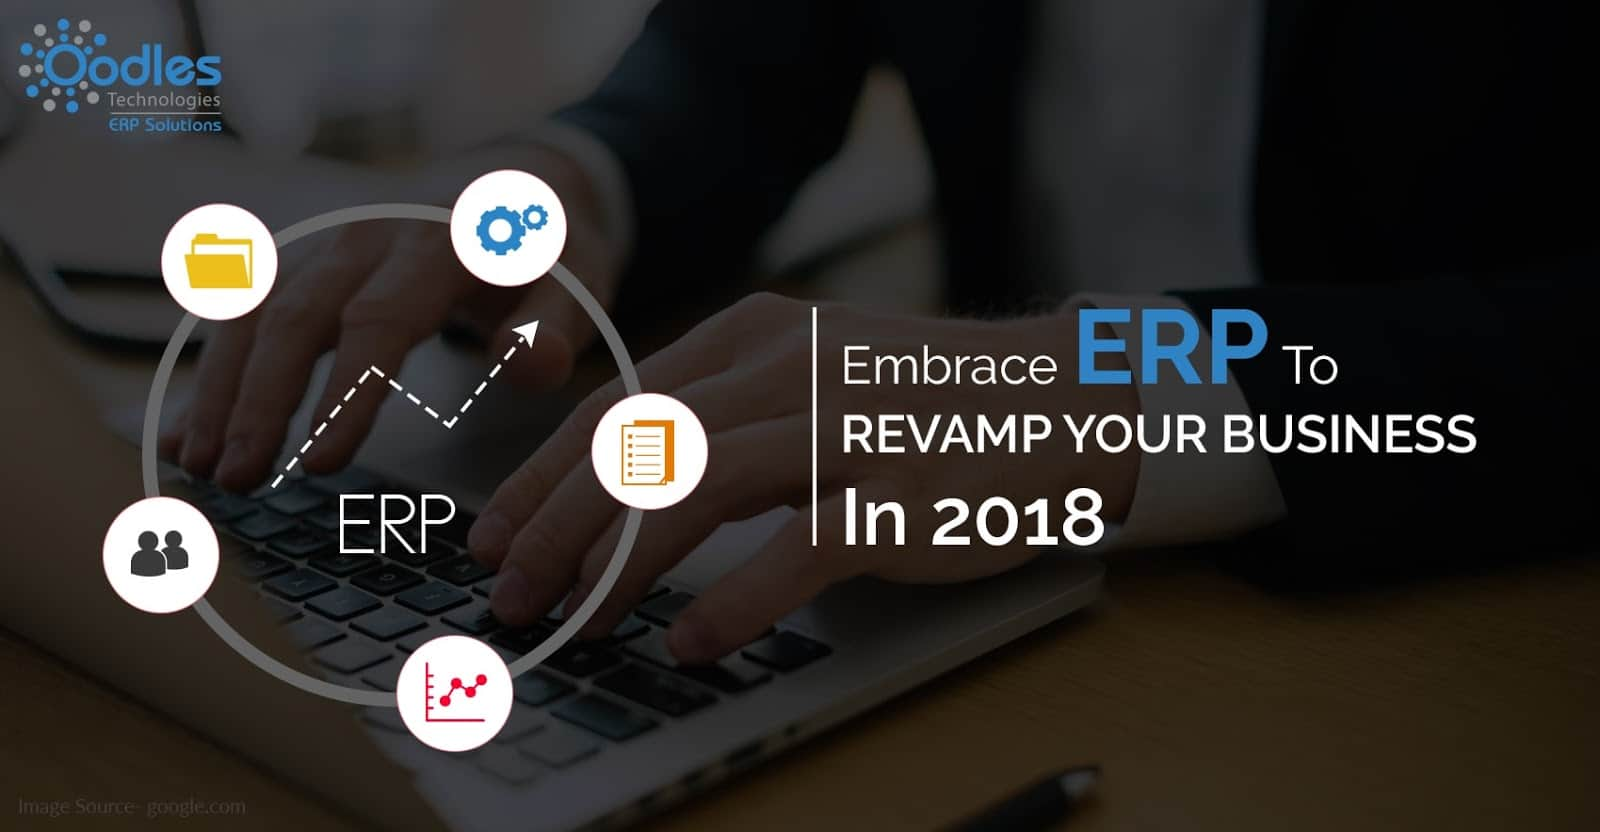 erp for small businesses